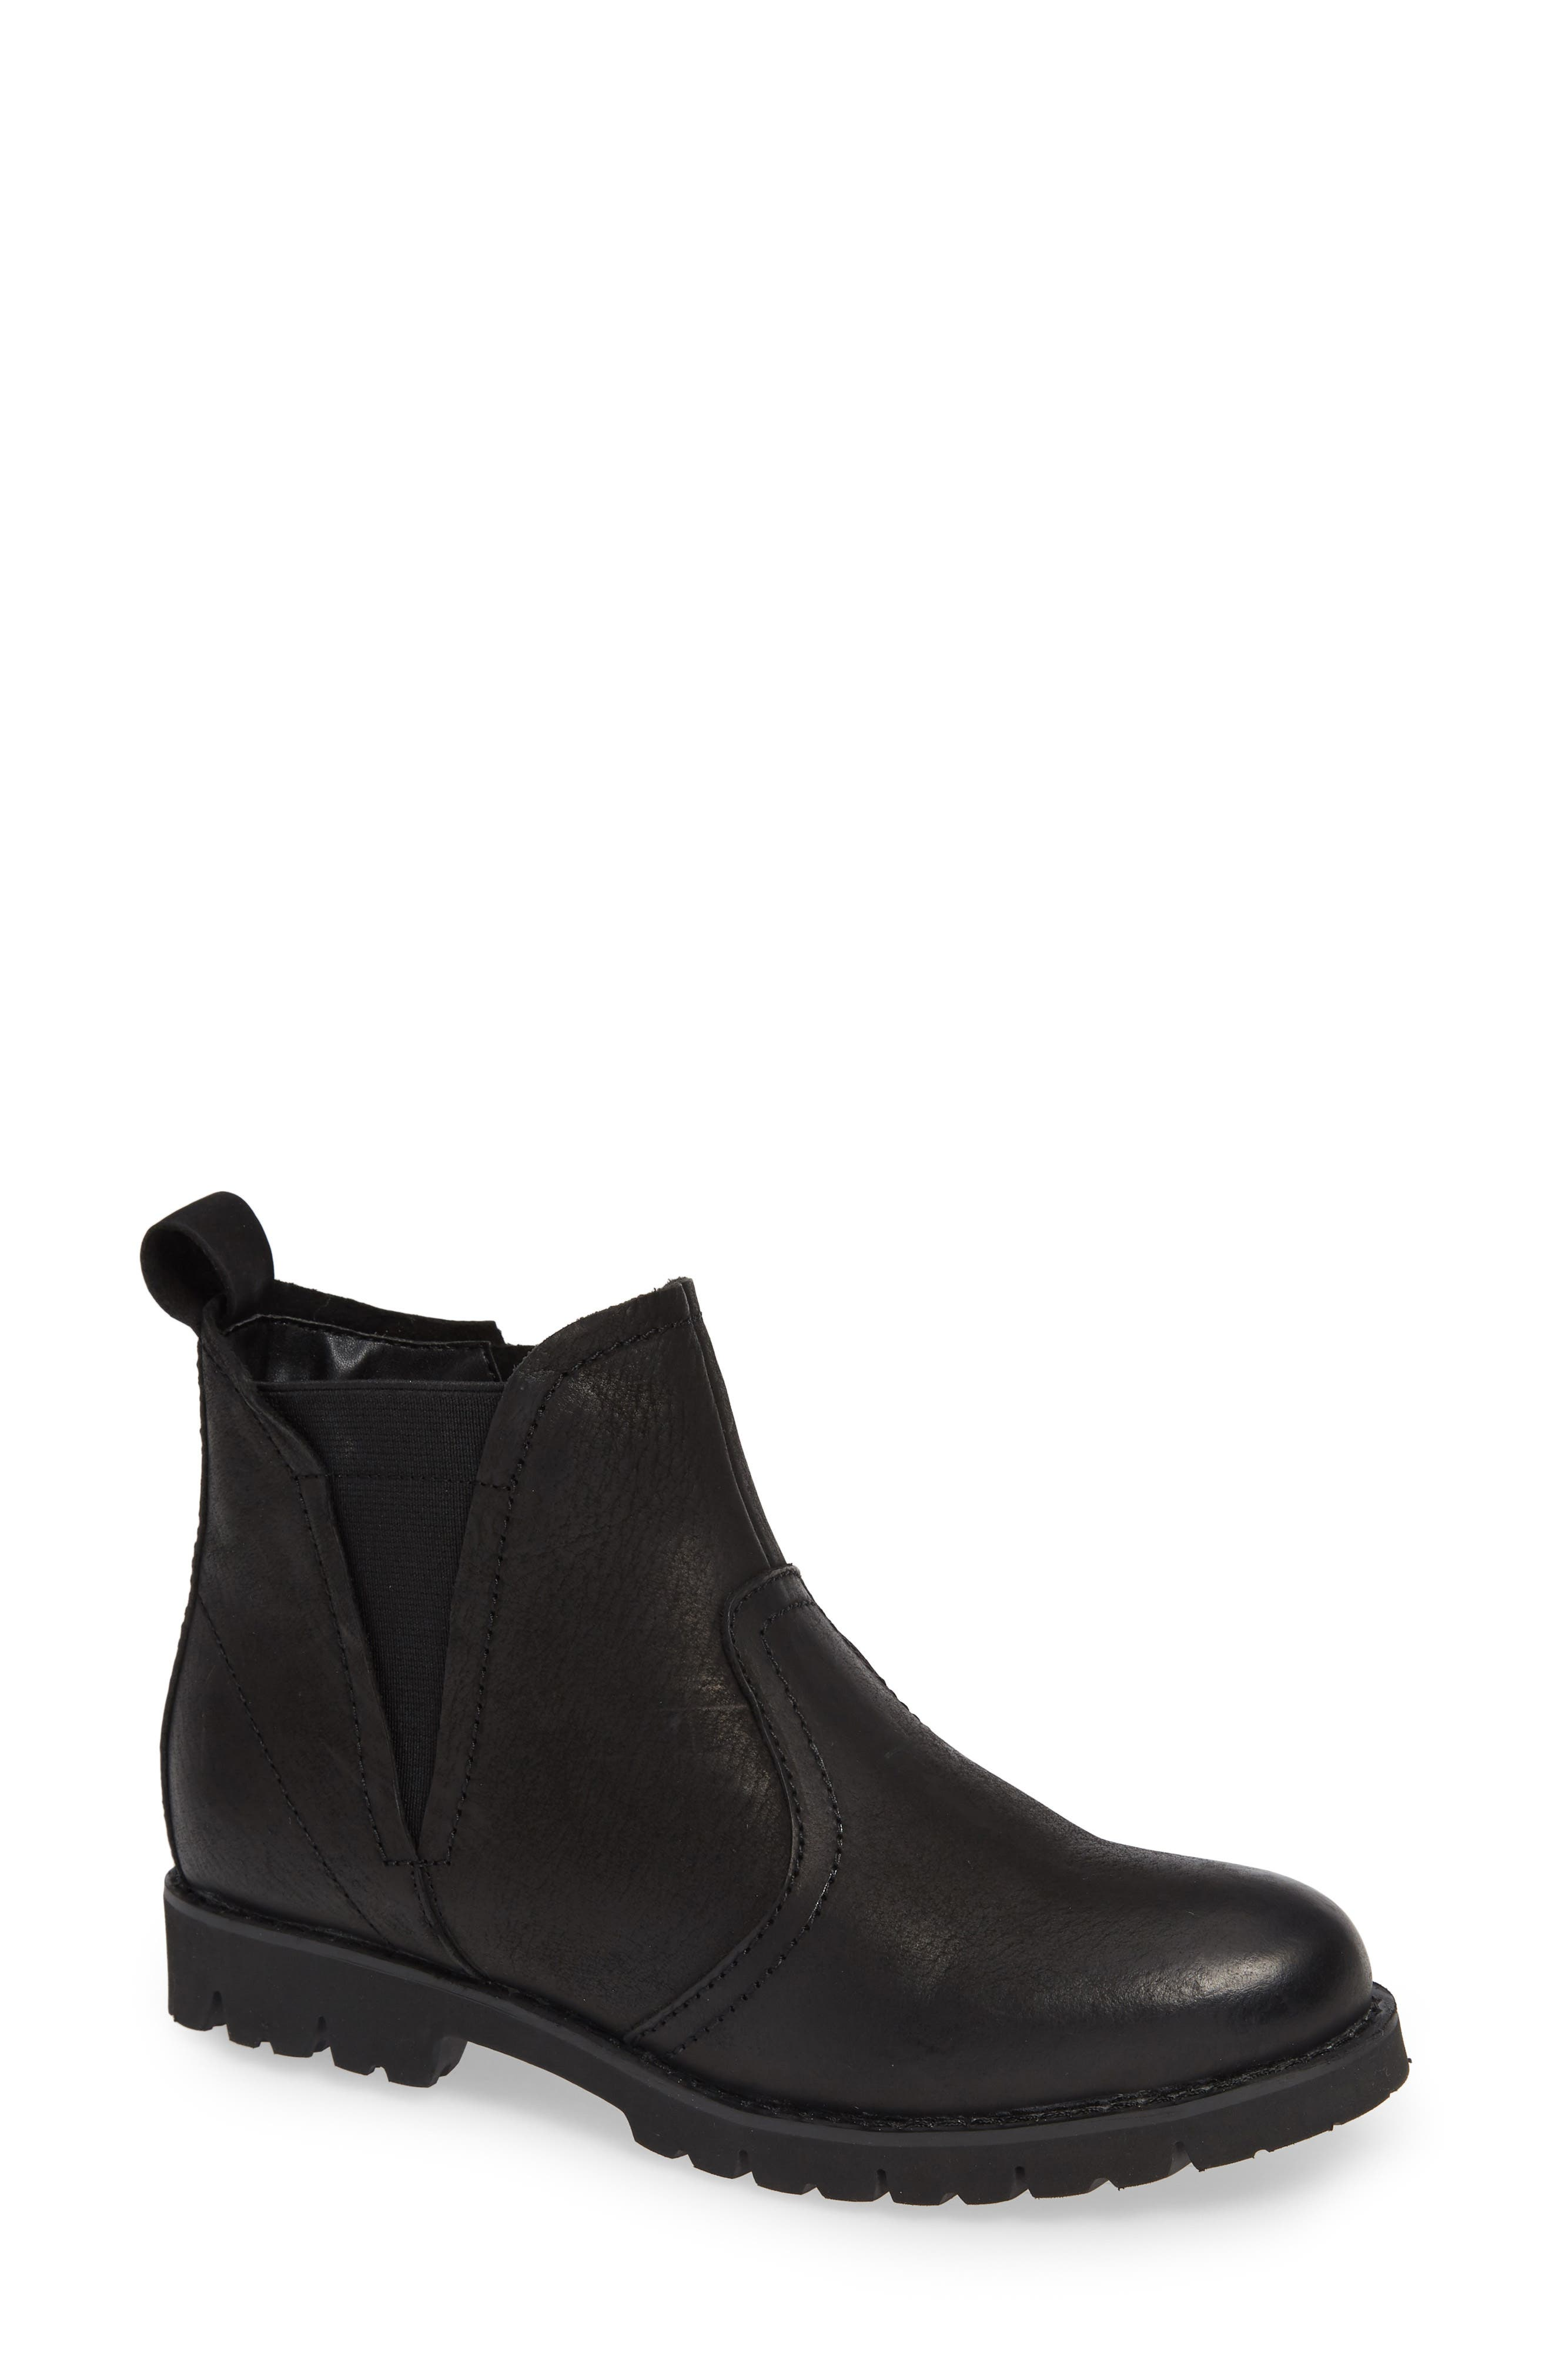 DAVID TATE, Reserve Lugged Bootie, Main thumbnail 1, color, BLACK NUBUCK LEATHER